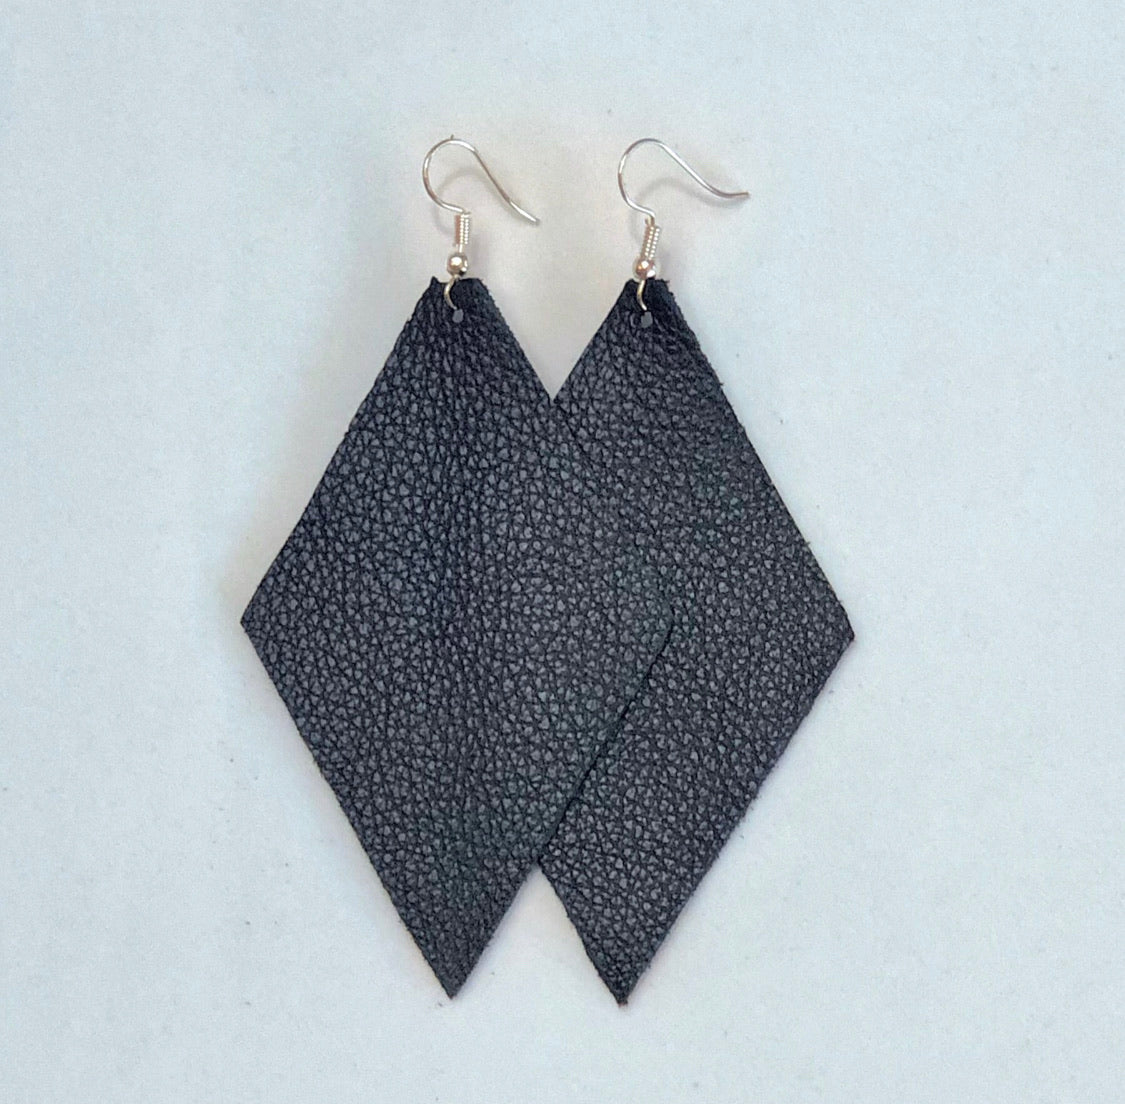 Black Earrings - Diamond